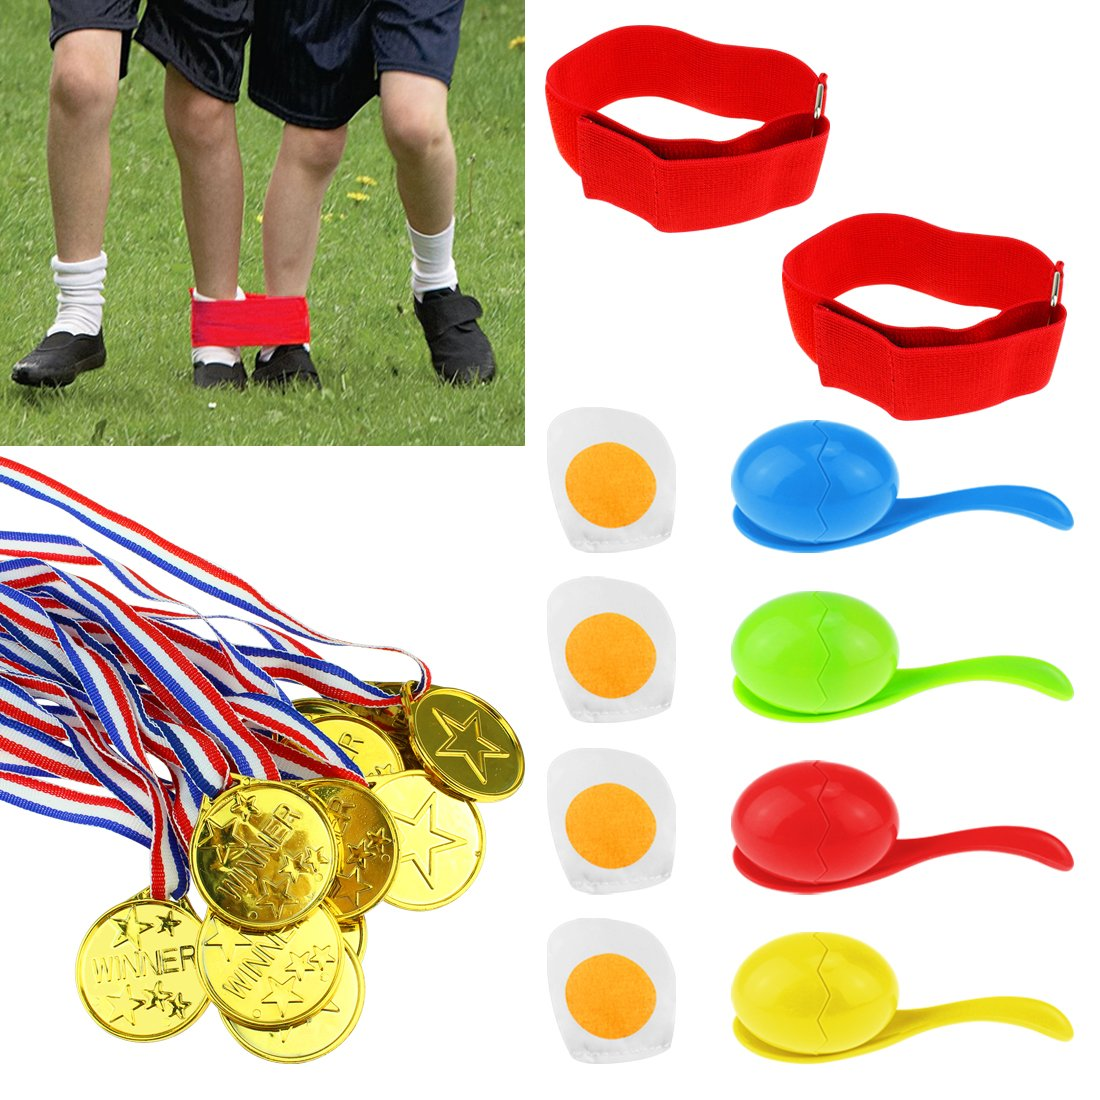 KOMIWOO 3 Legged Race Bands Egg Spoon Relay Race Outdoor Games with Game Prizes(12pcs) for Kids Adults Field Day Game, Fun Family Birthday Team Party Games(2 Bands, 4 Eggs and Spoons)